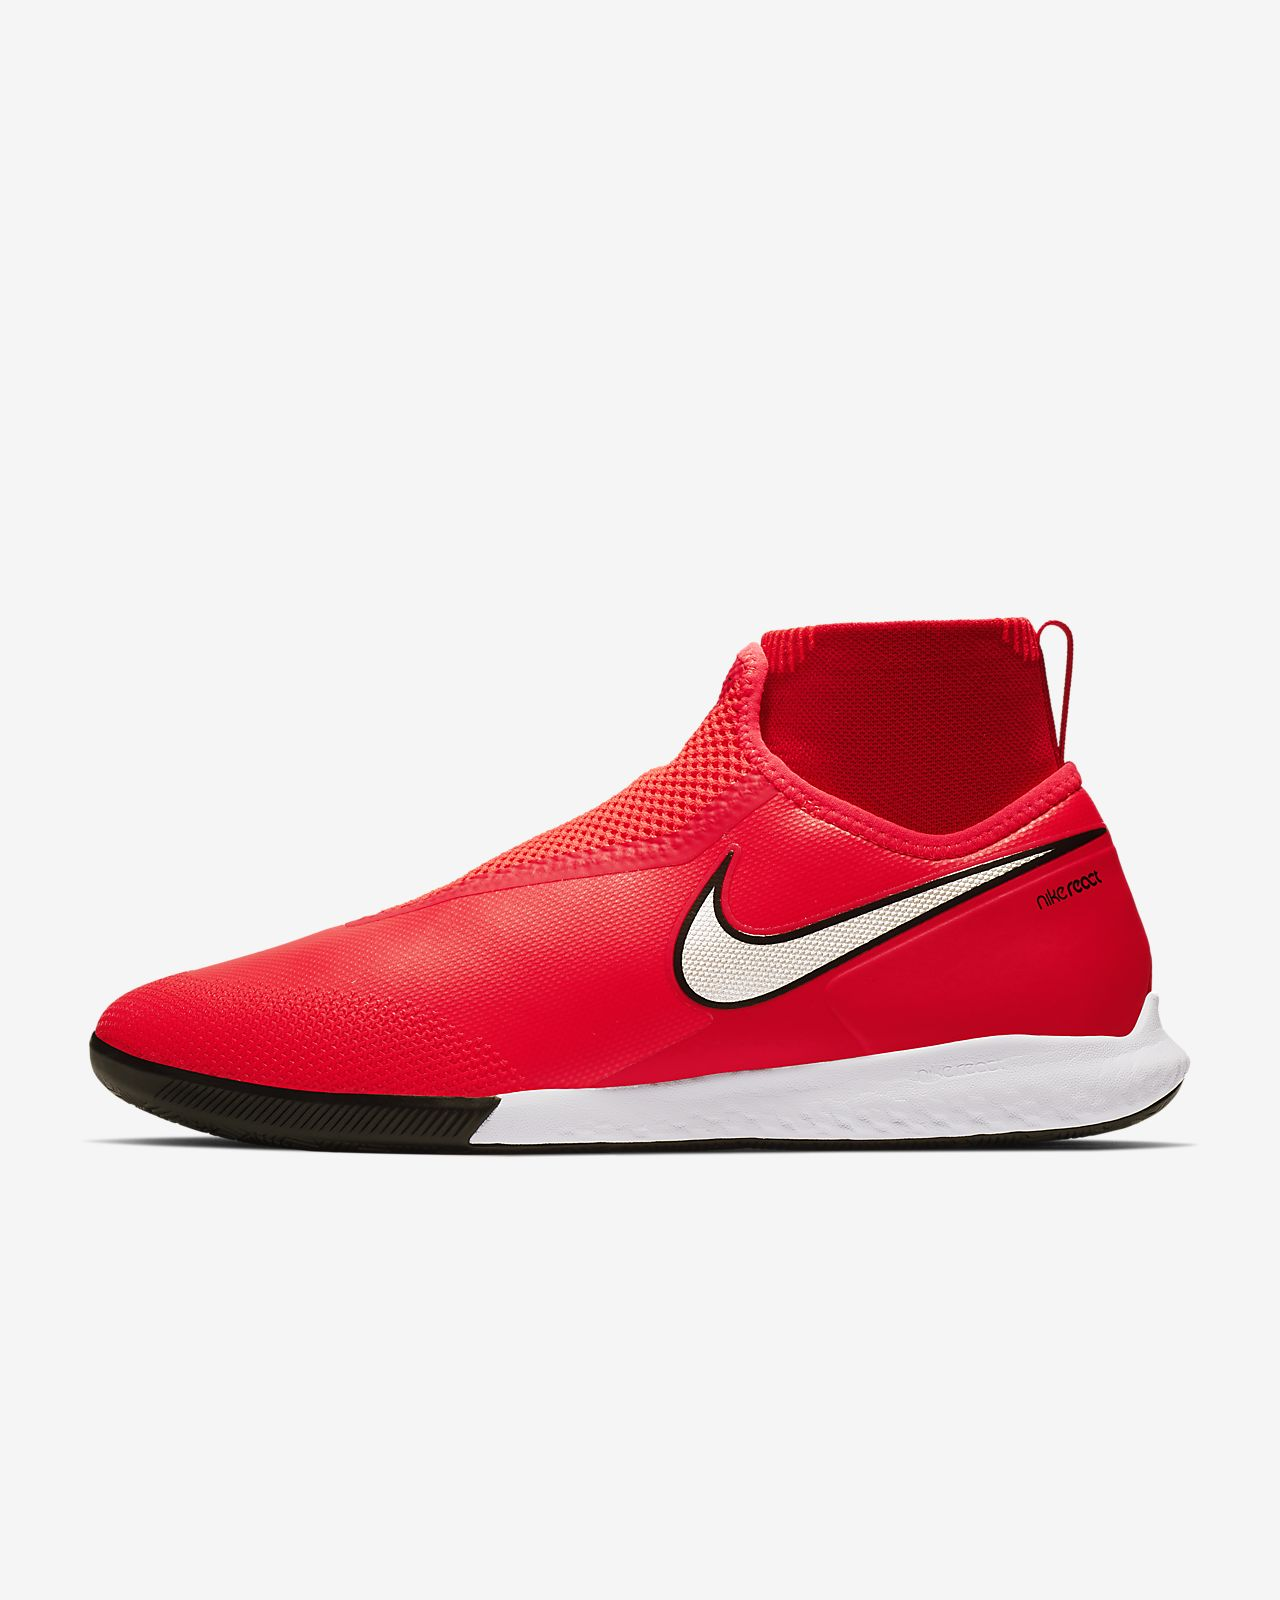 eae3349d33f Nike React PhantomVSN Pro Dynamic Fit Game Over IC Indoor Court ...